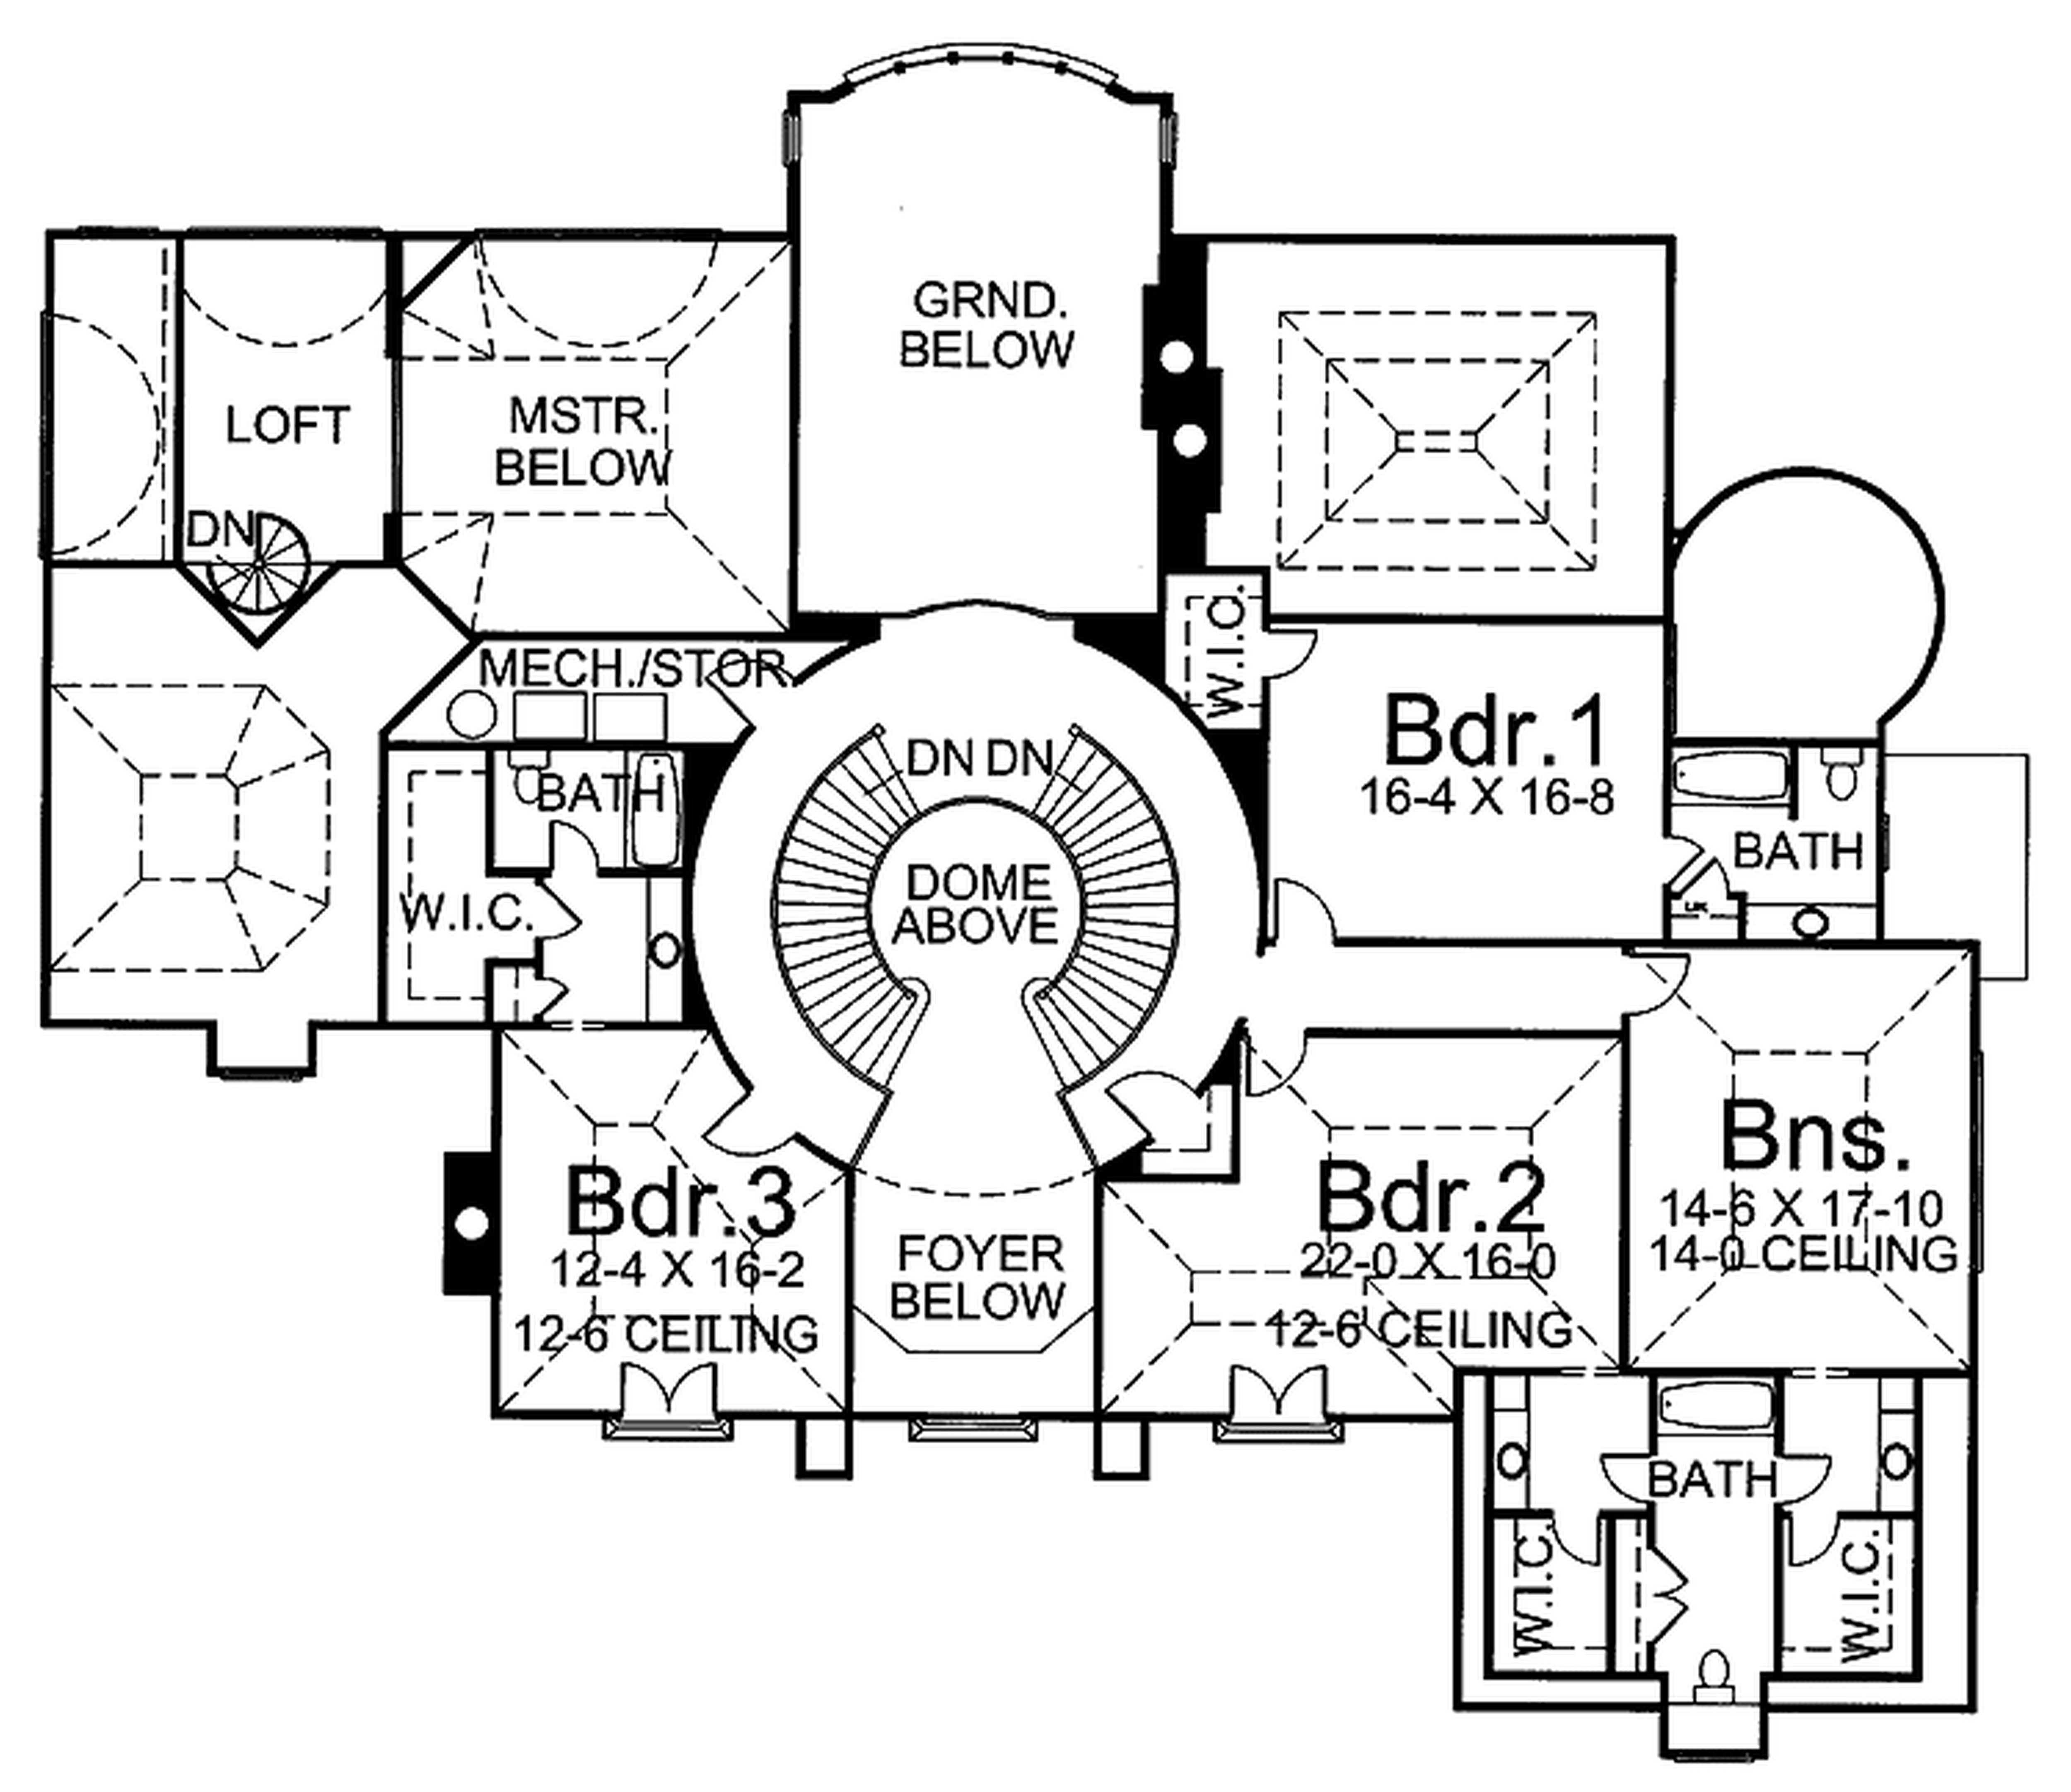 Renovation drawing at getdrawings free for personal use 5000x4327 house design software online architecture plan free floor drawing malvernweather Image collections